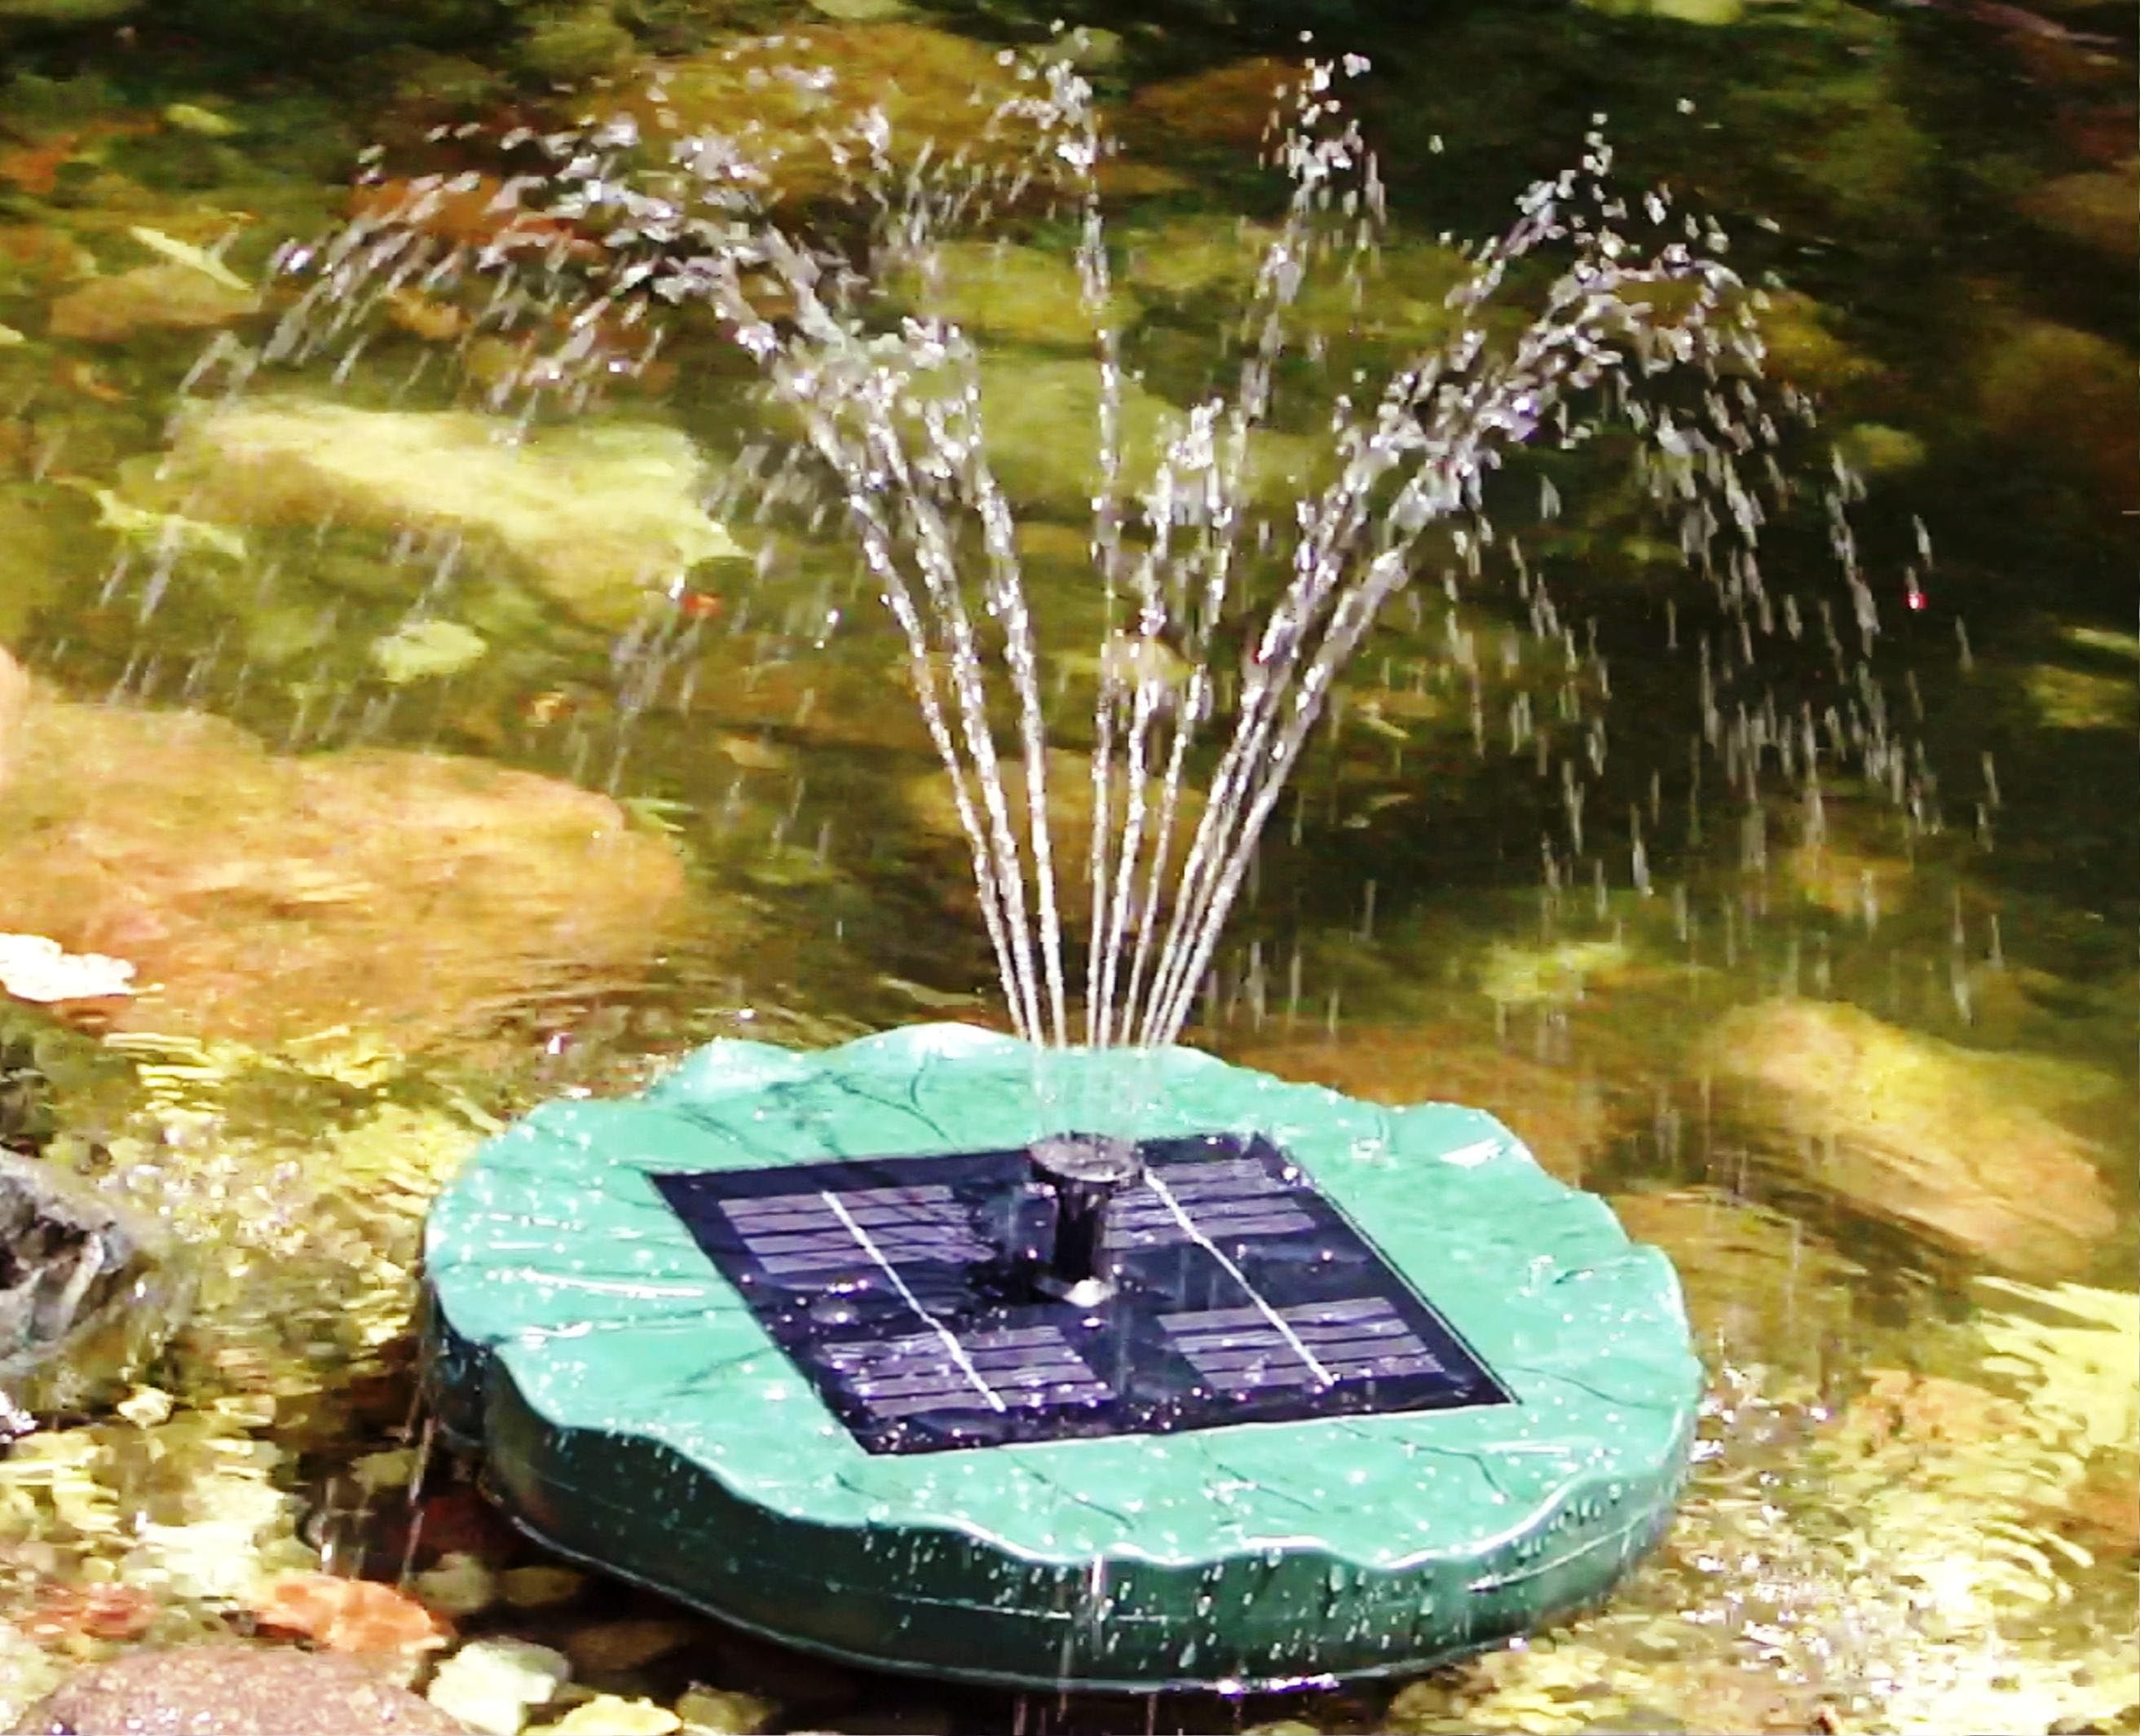 Solar Powered Pond Fountain | Outdoor Fountains | Pinterest ...